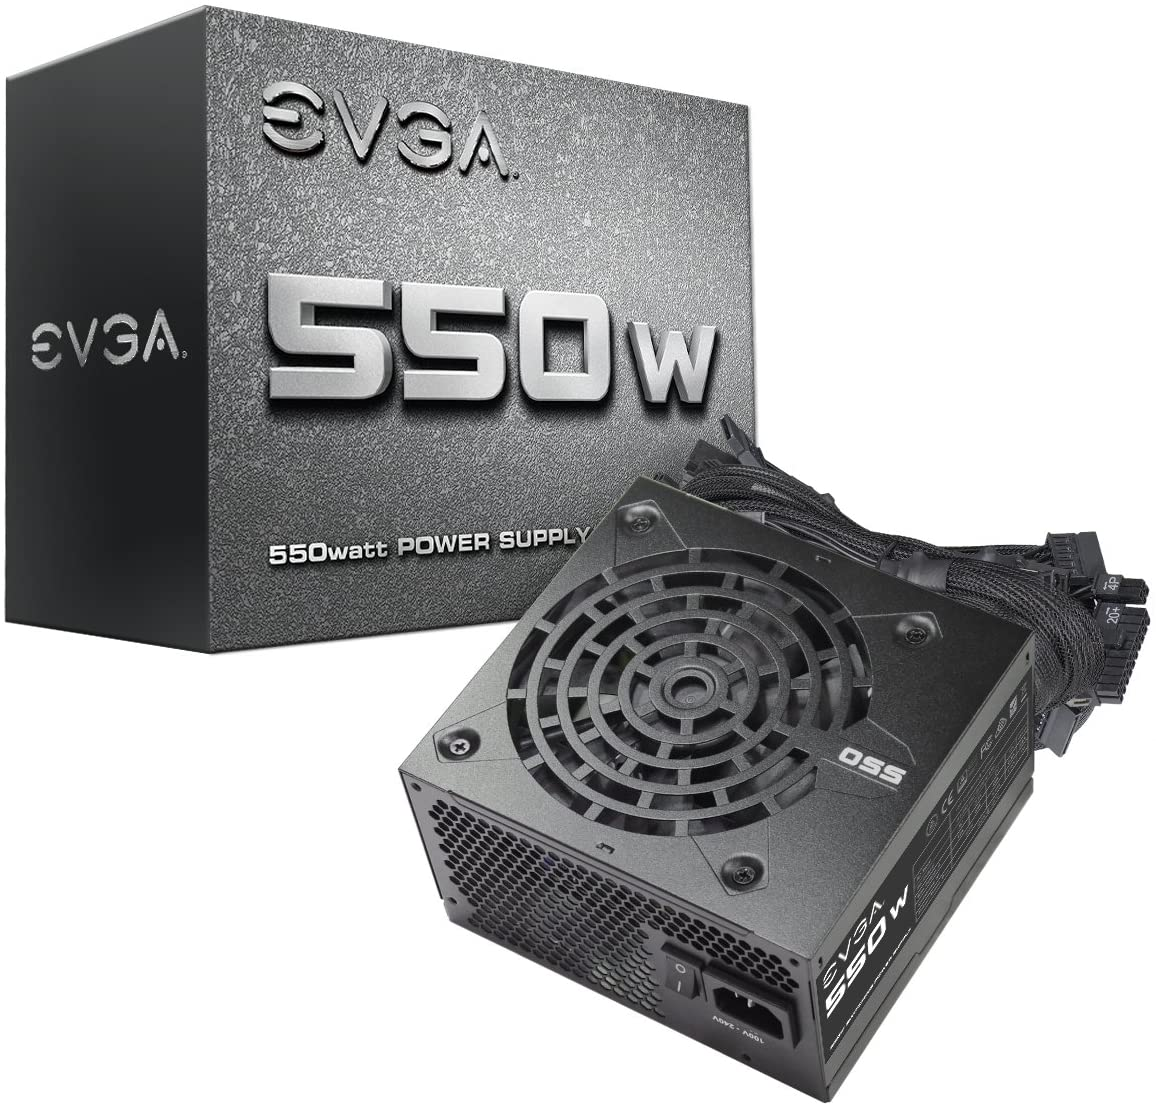 EVGA NVIDIA GeForce RTX 3090 FTW3 Ultra Gaming 24GB  + EVGA PSU 550W + Fractal 40mm Fan COMBO BACKORDER